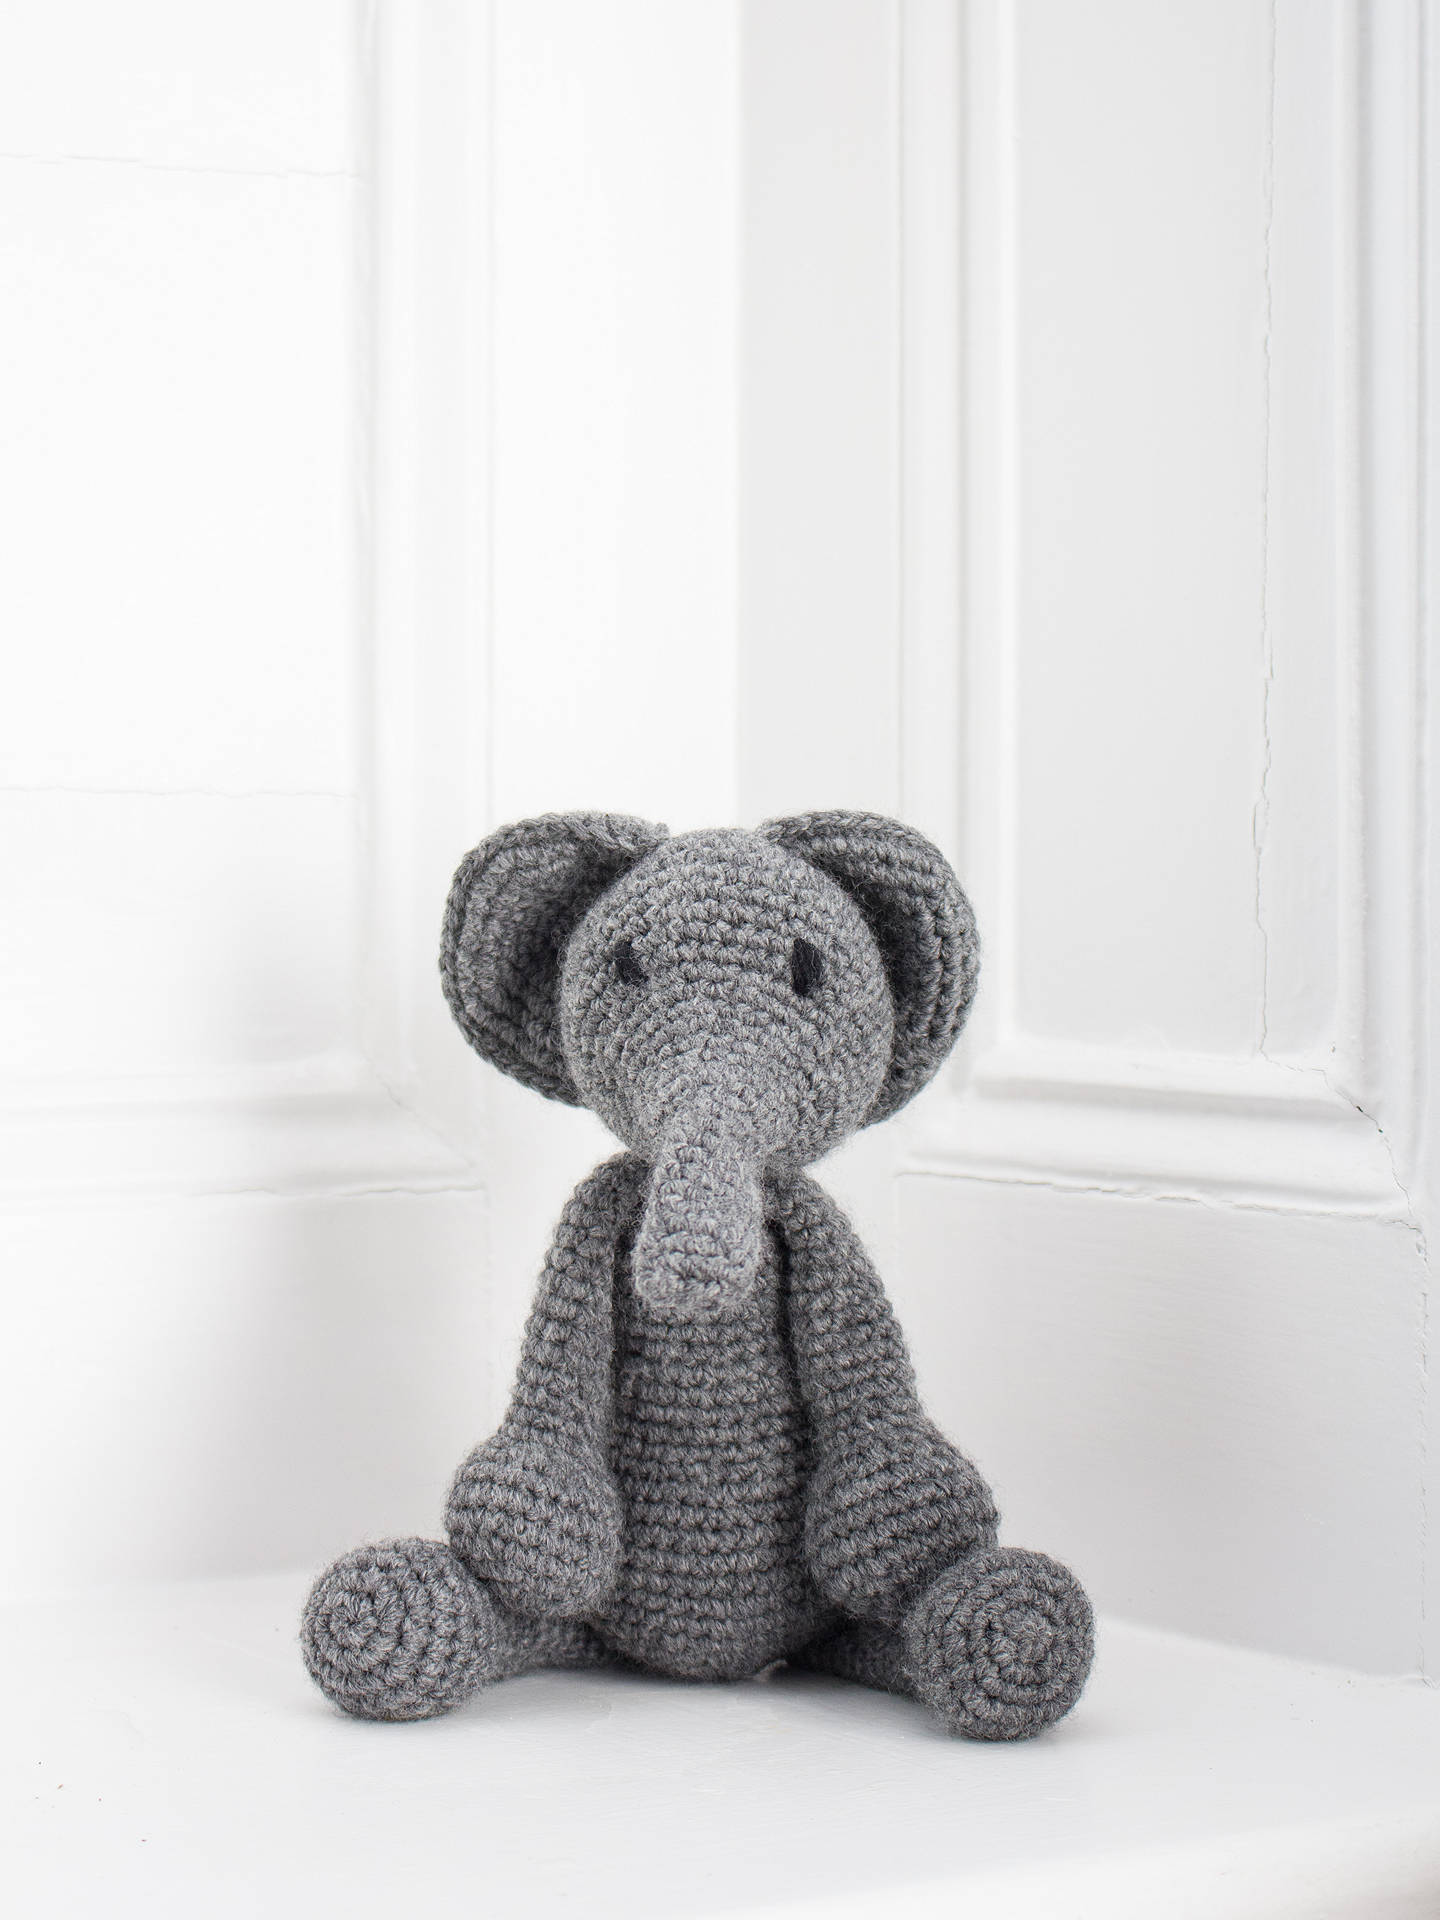 The Sweetest Crochet Elephant Patterns To Try | The WHOot | 1920x1440